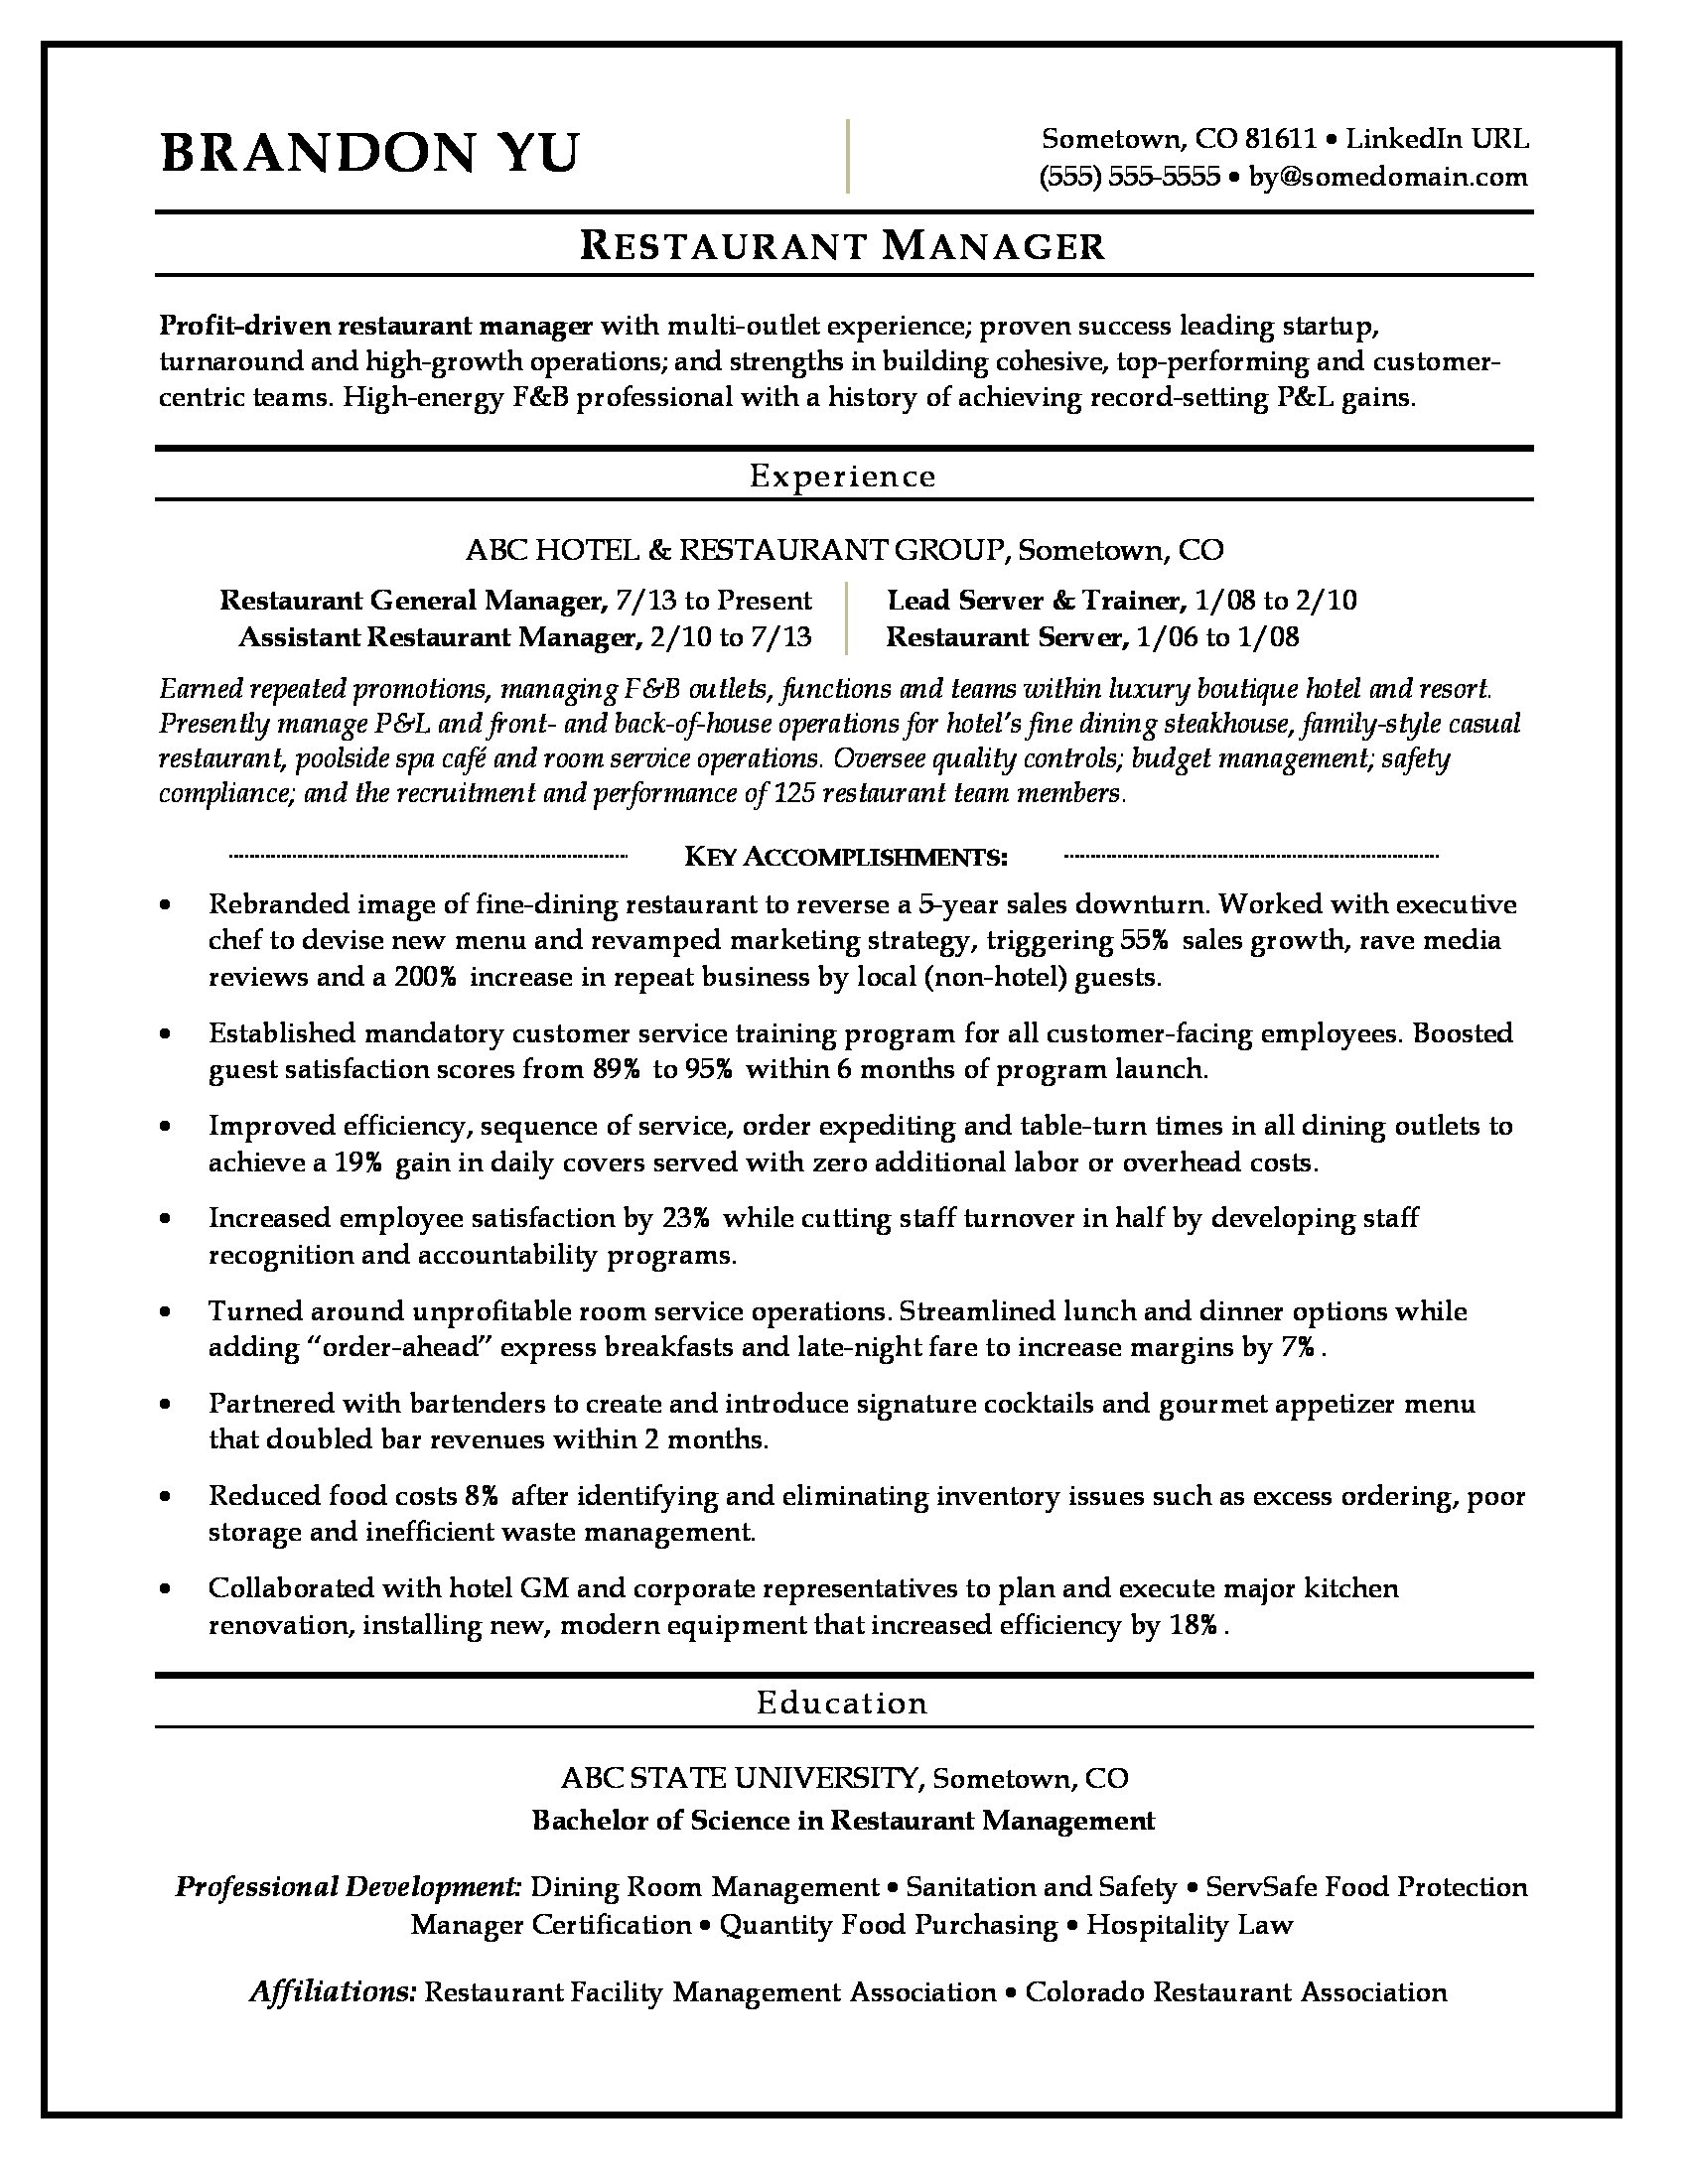 Captivating Sample Resume For A Restaurant Manager With Resume Restaurant Manager